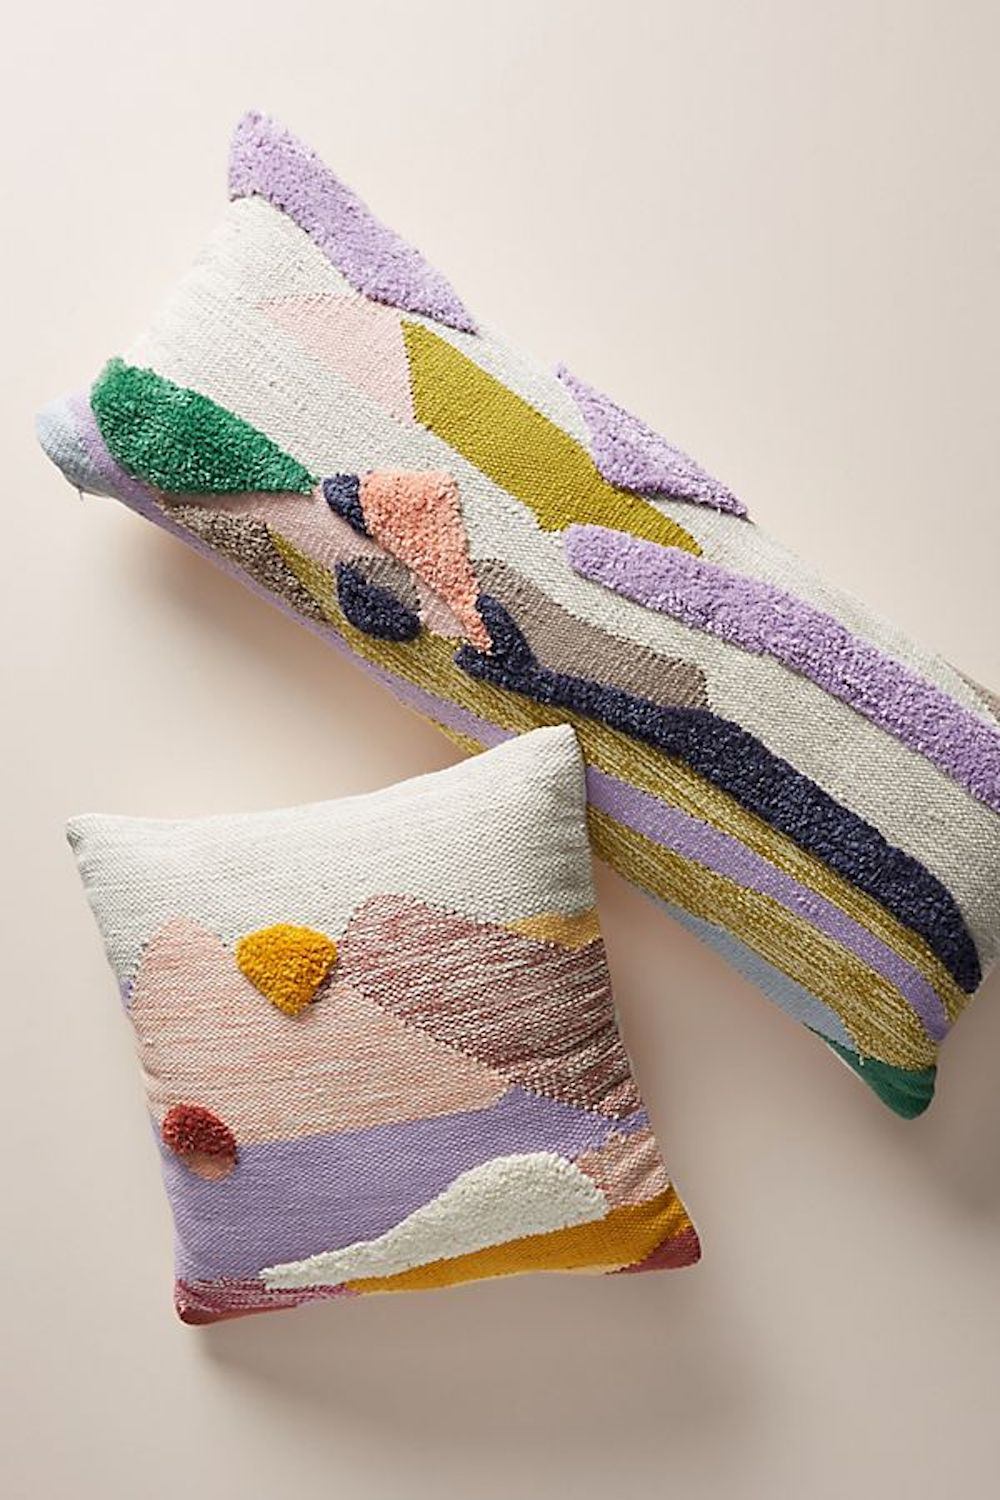 12 colorful throw pillows to freshen up